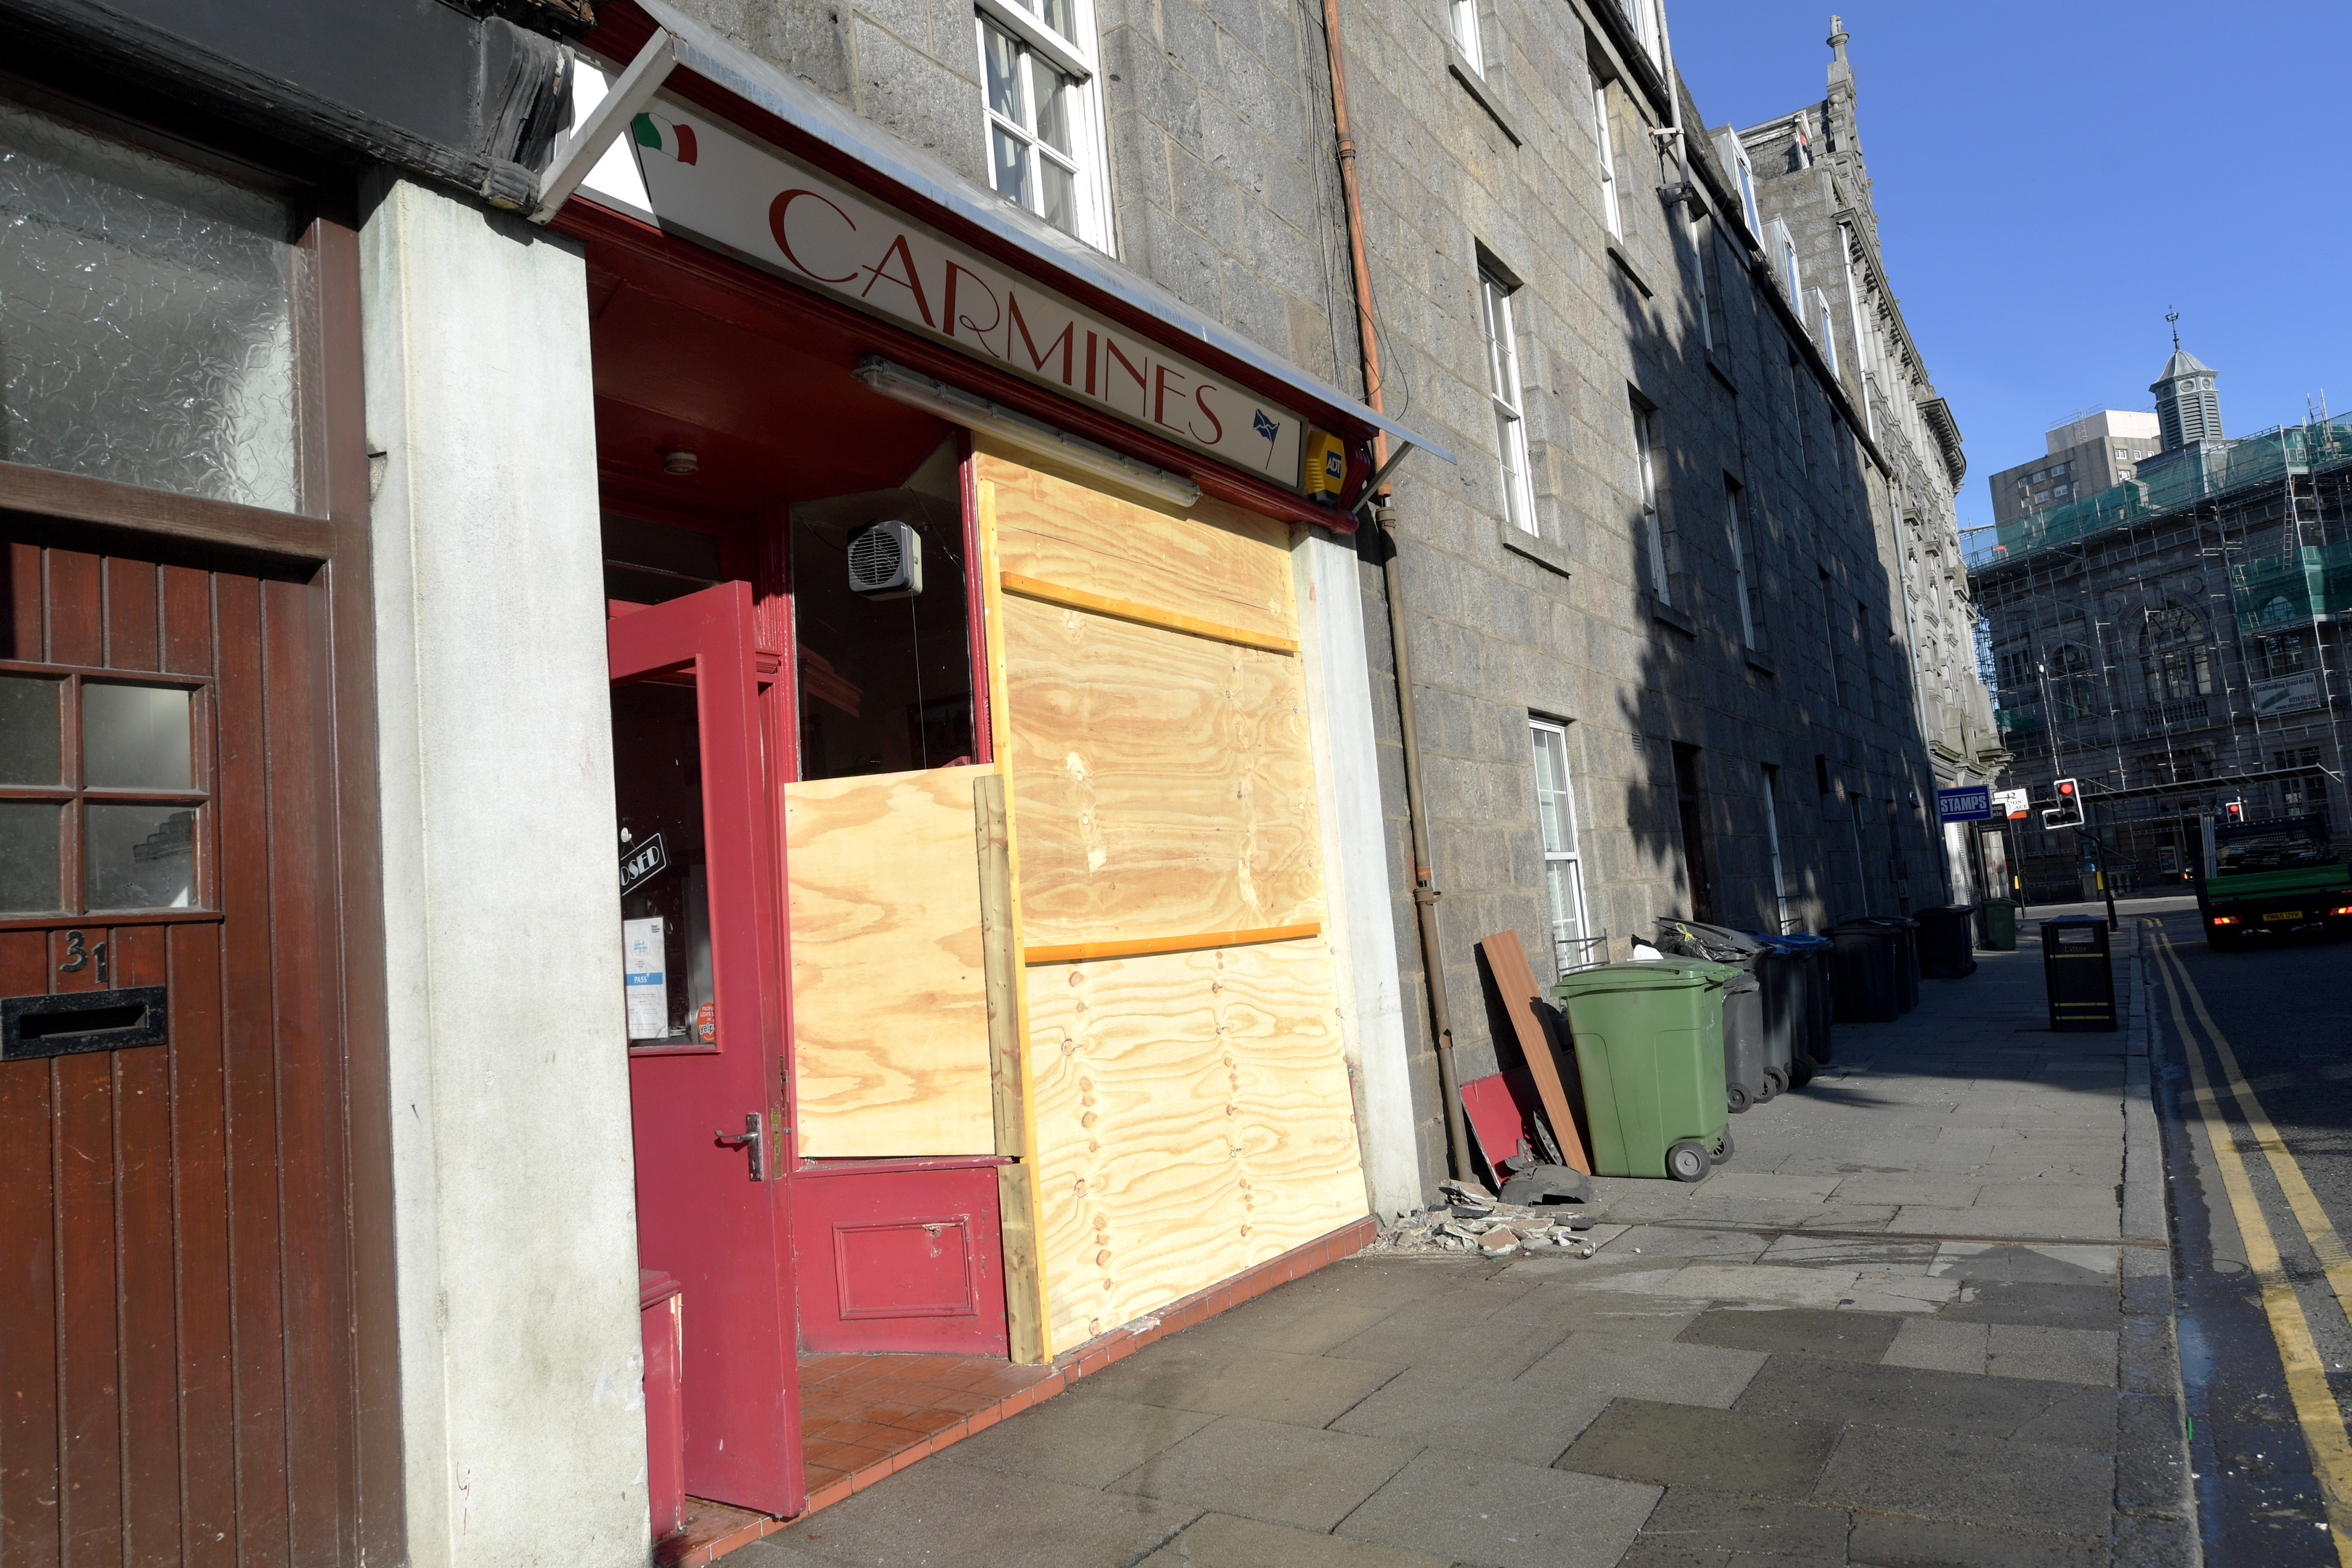 A van crashed into Carmines in the early hours of this morning